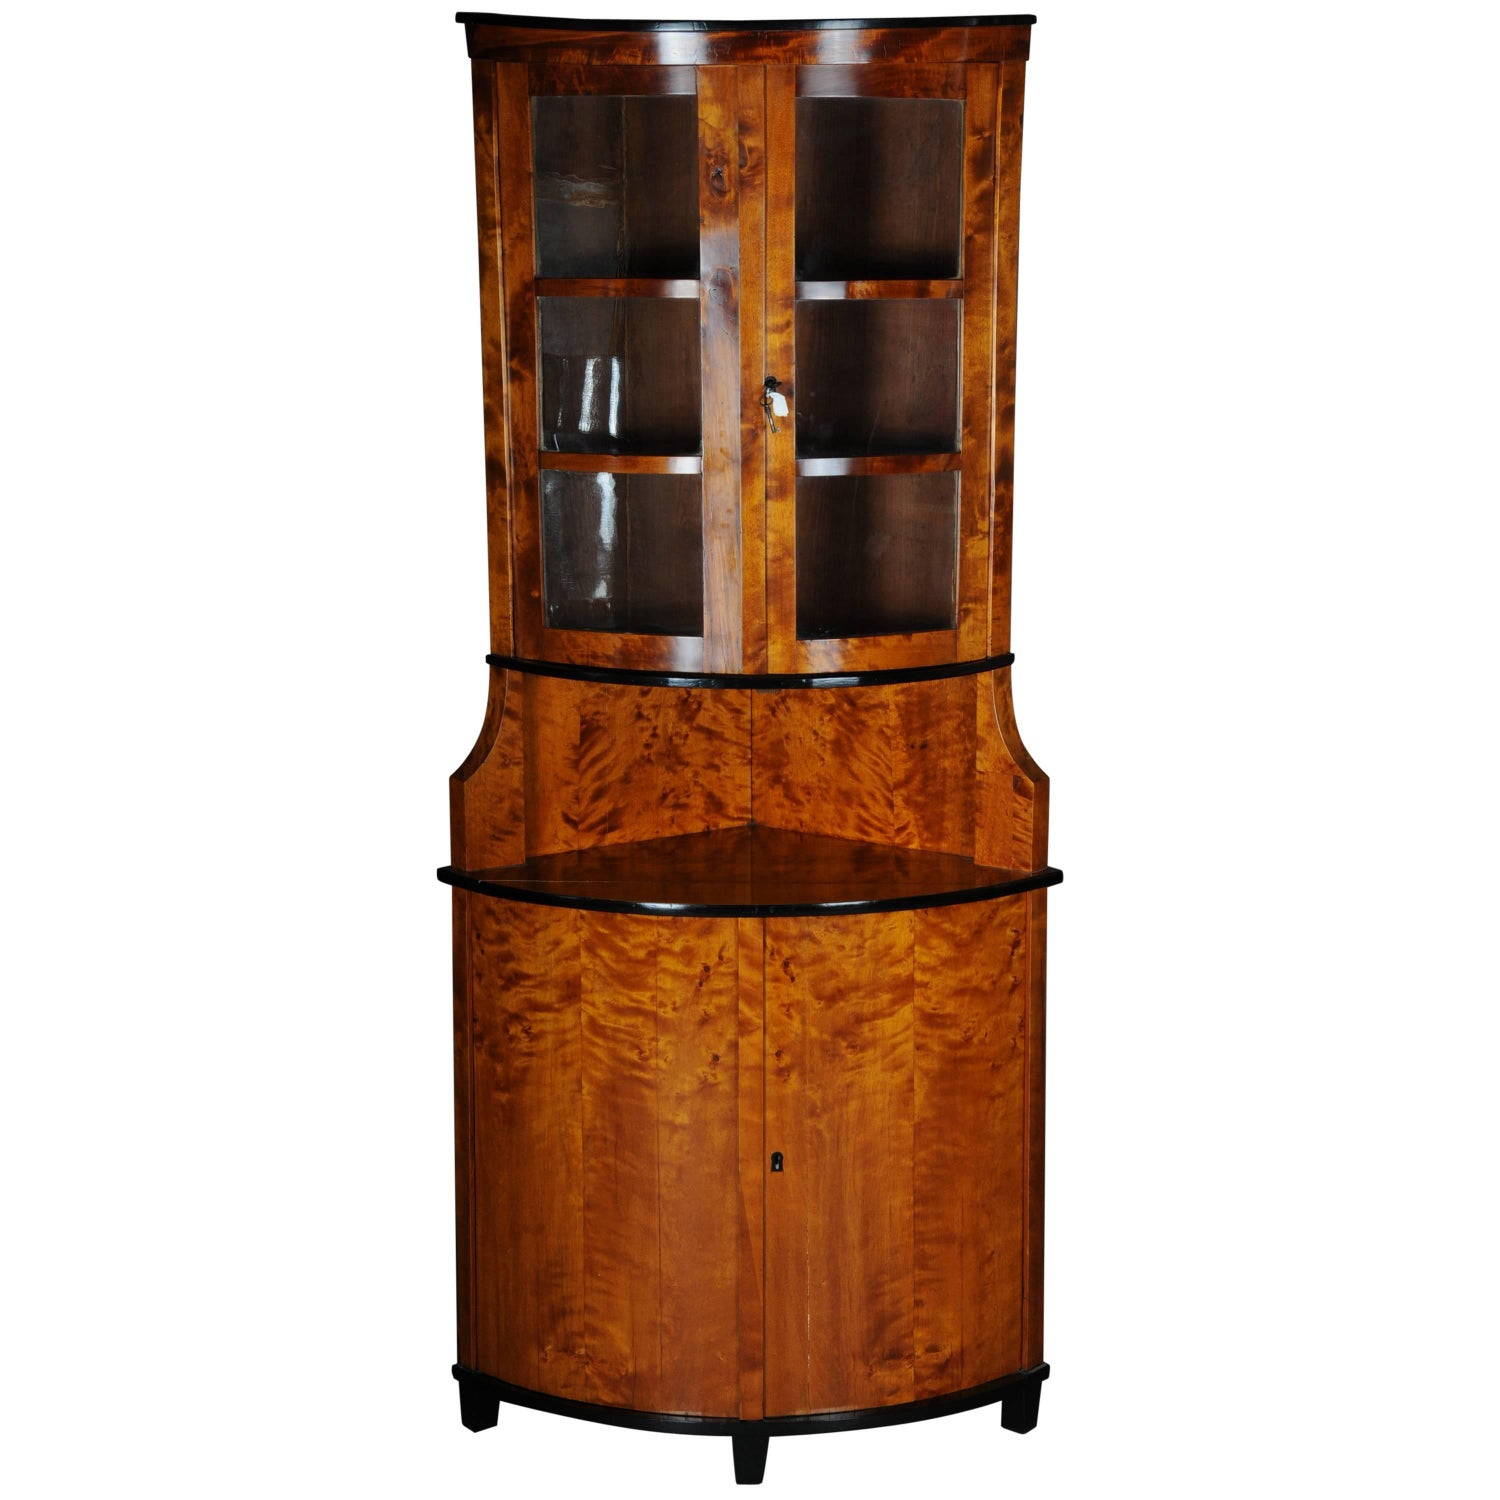 19Th Century Biedermeier Corner Cupboard, Showcase Birch 1860 For Sale